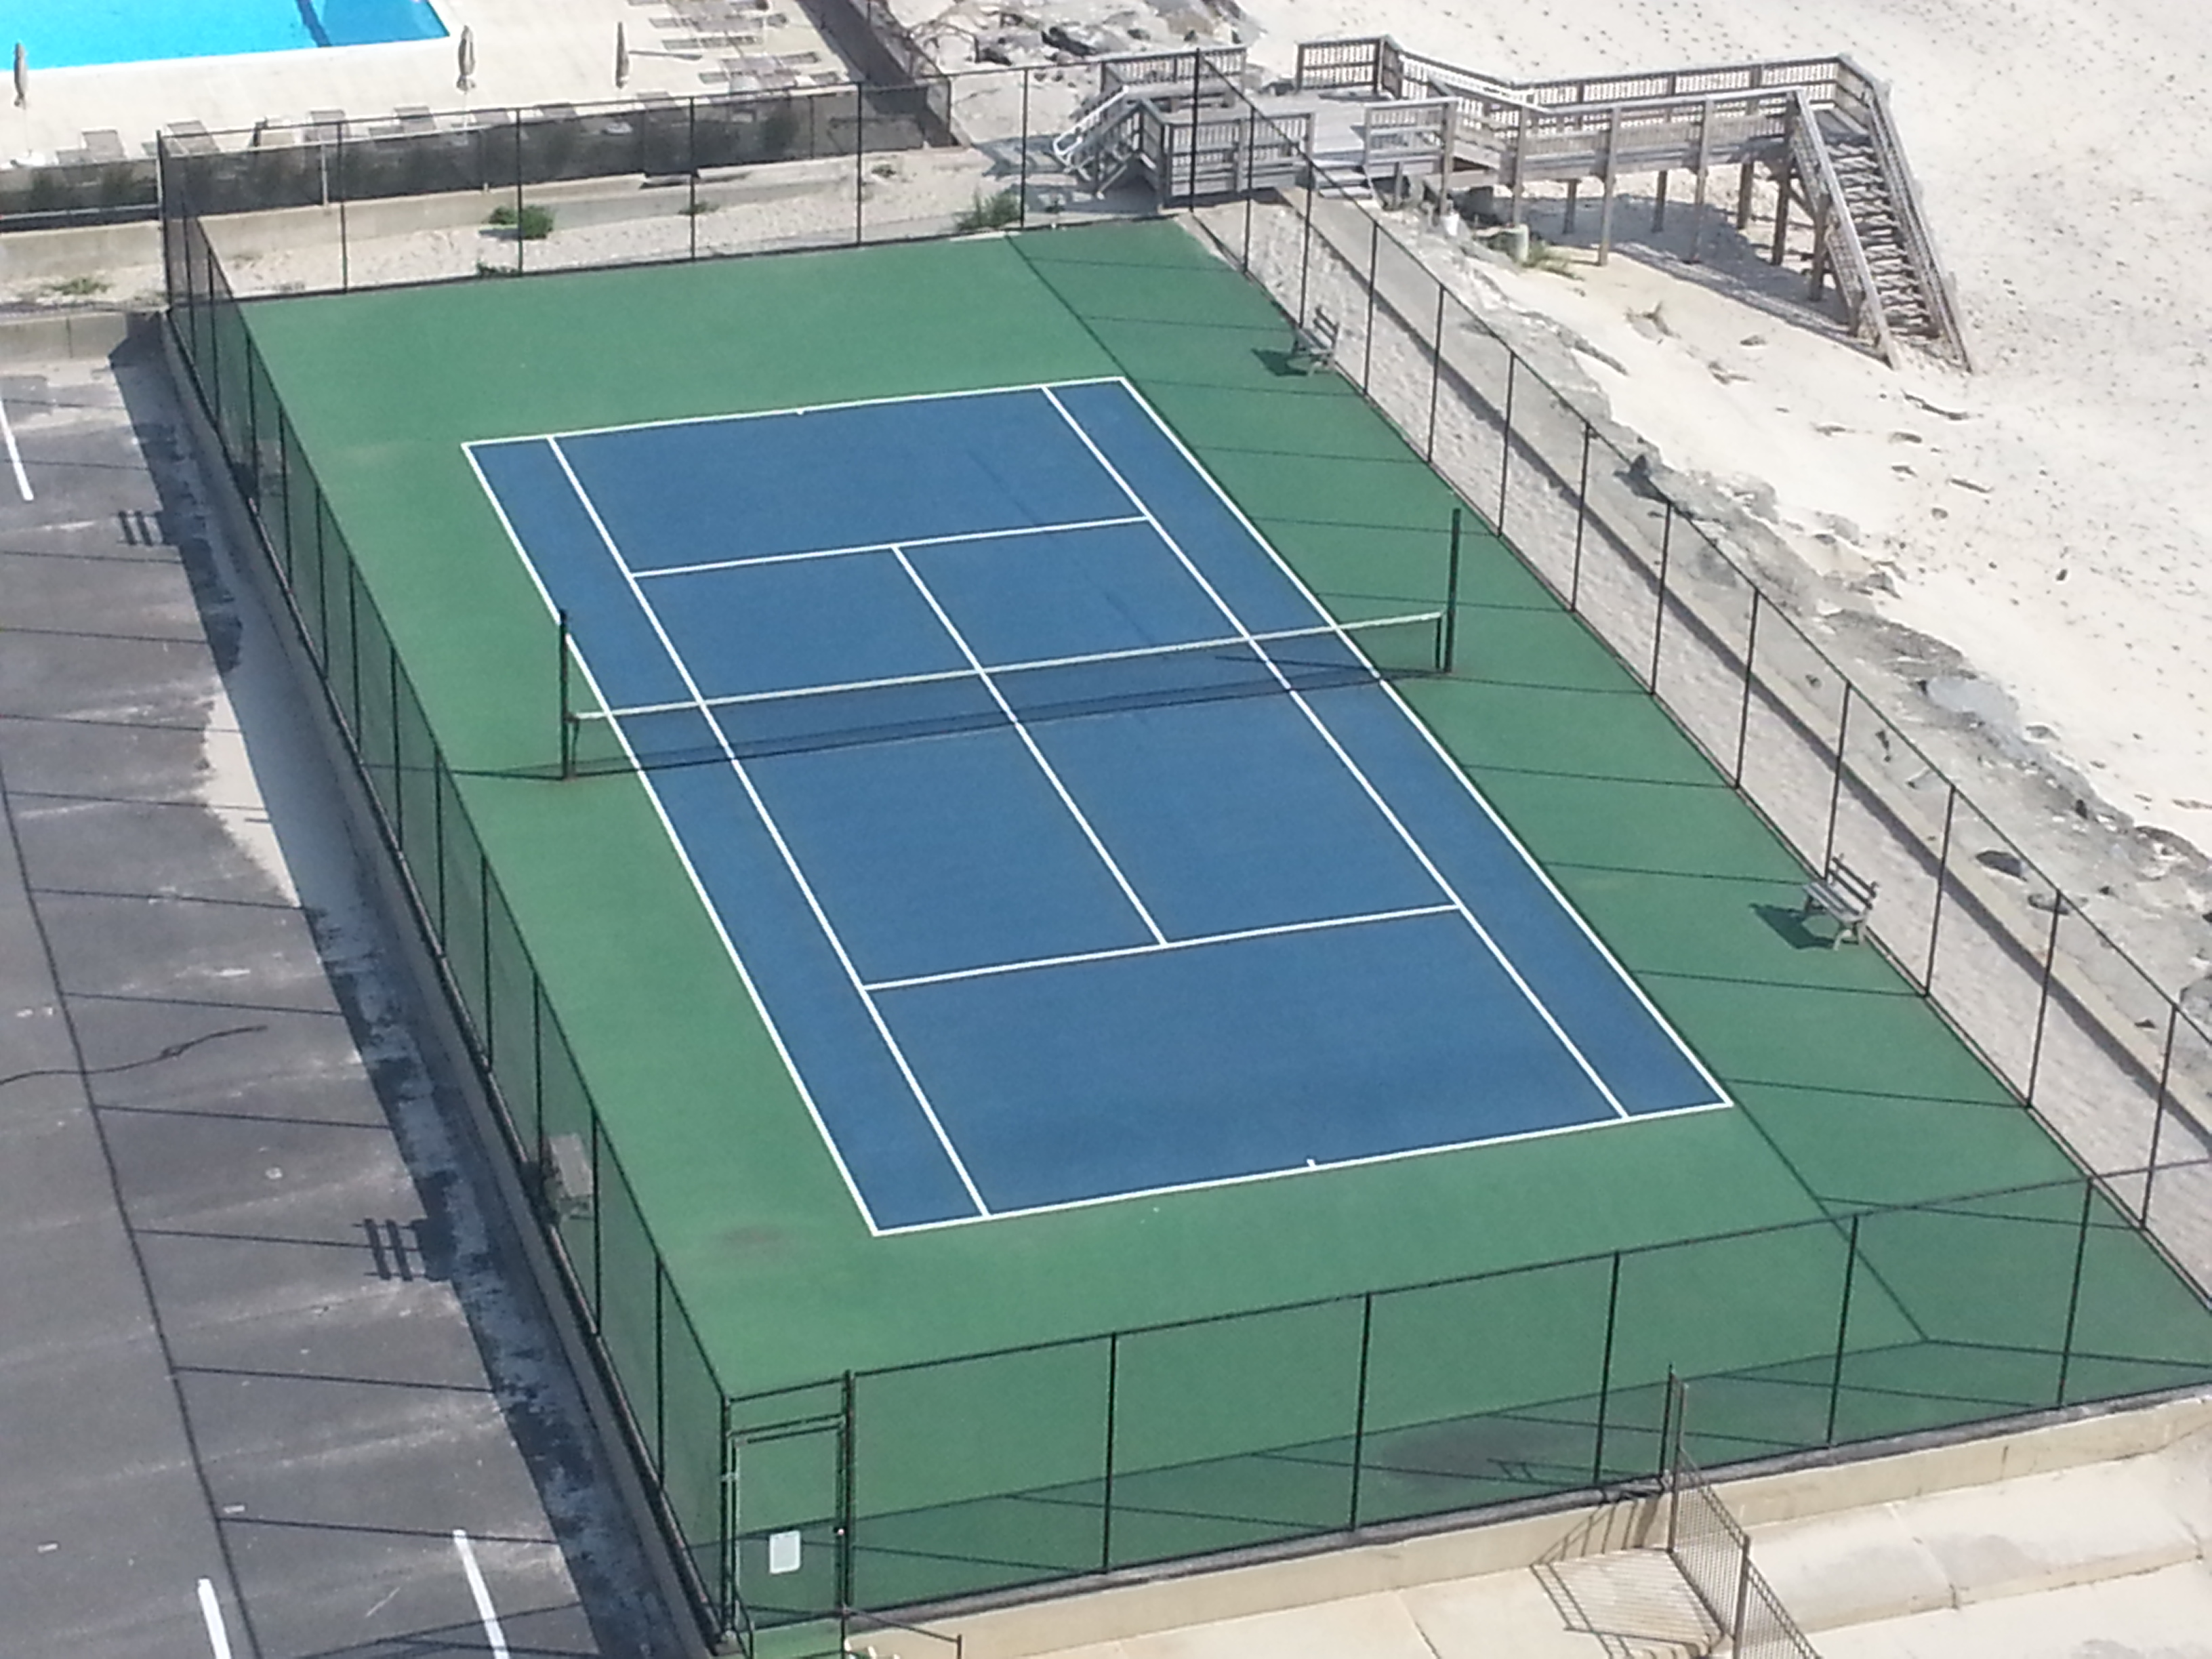 At the north end of the property next to the beach is this tennis court.